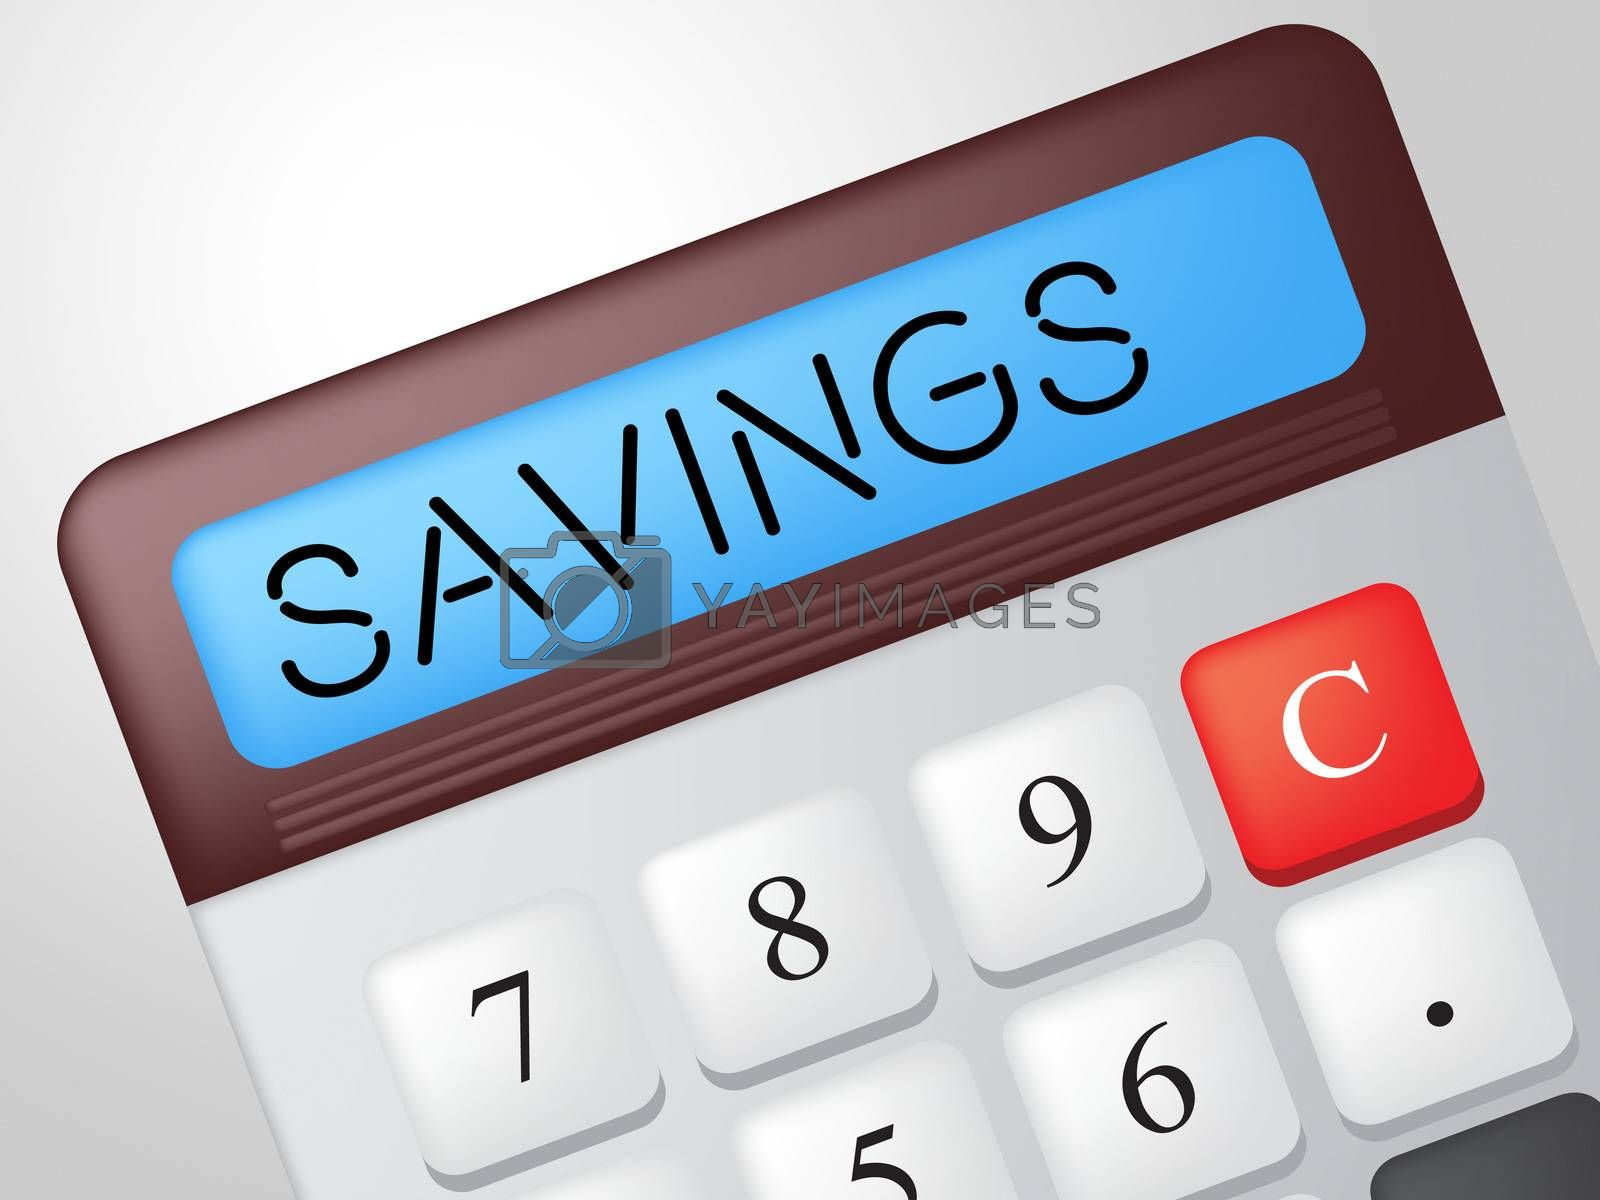 Savings Calculator Indicates Cash Increase And Wealth by stuartmiles